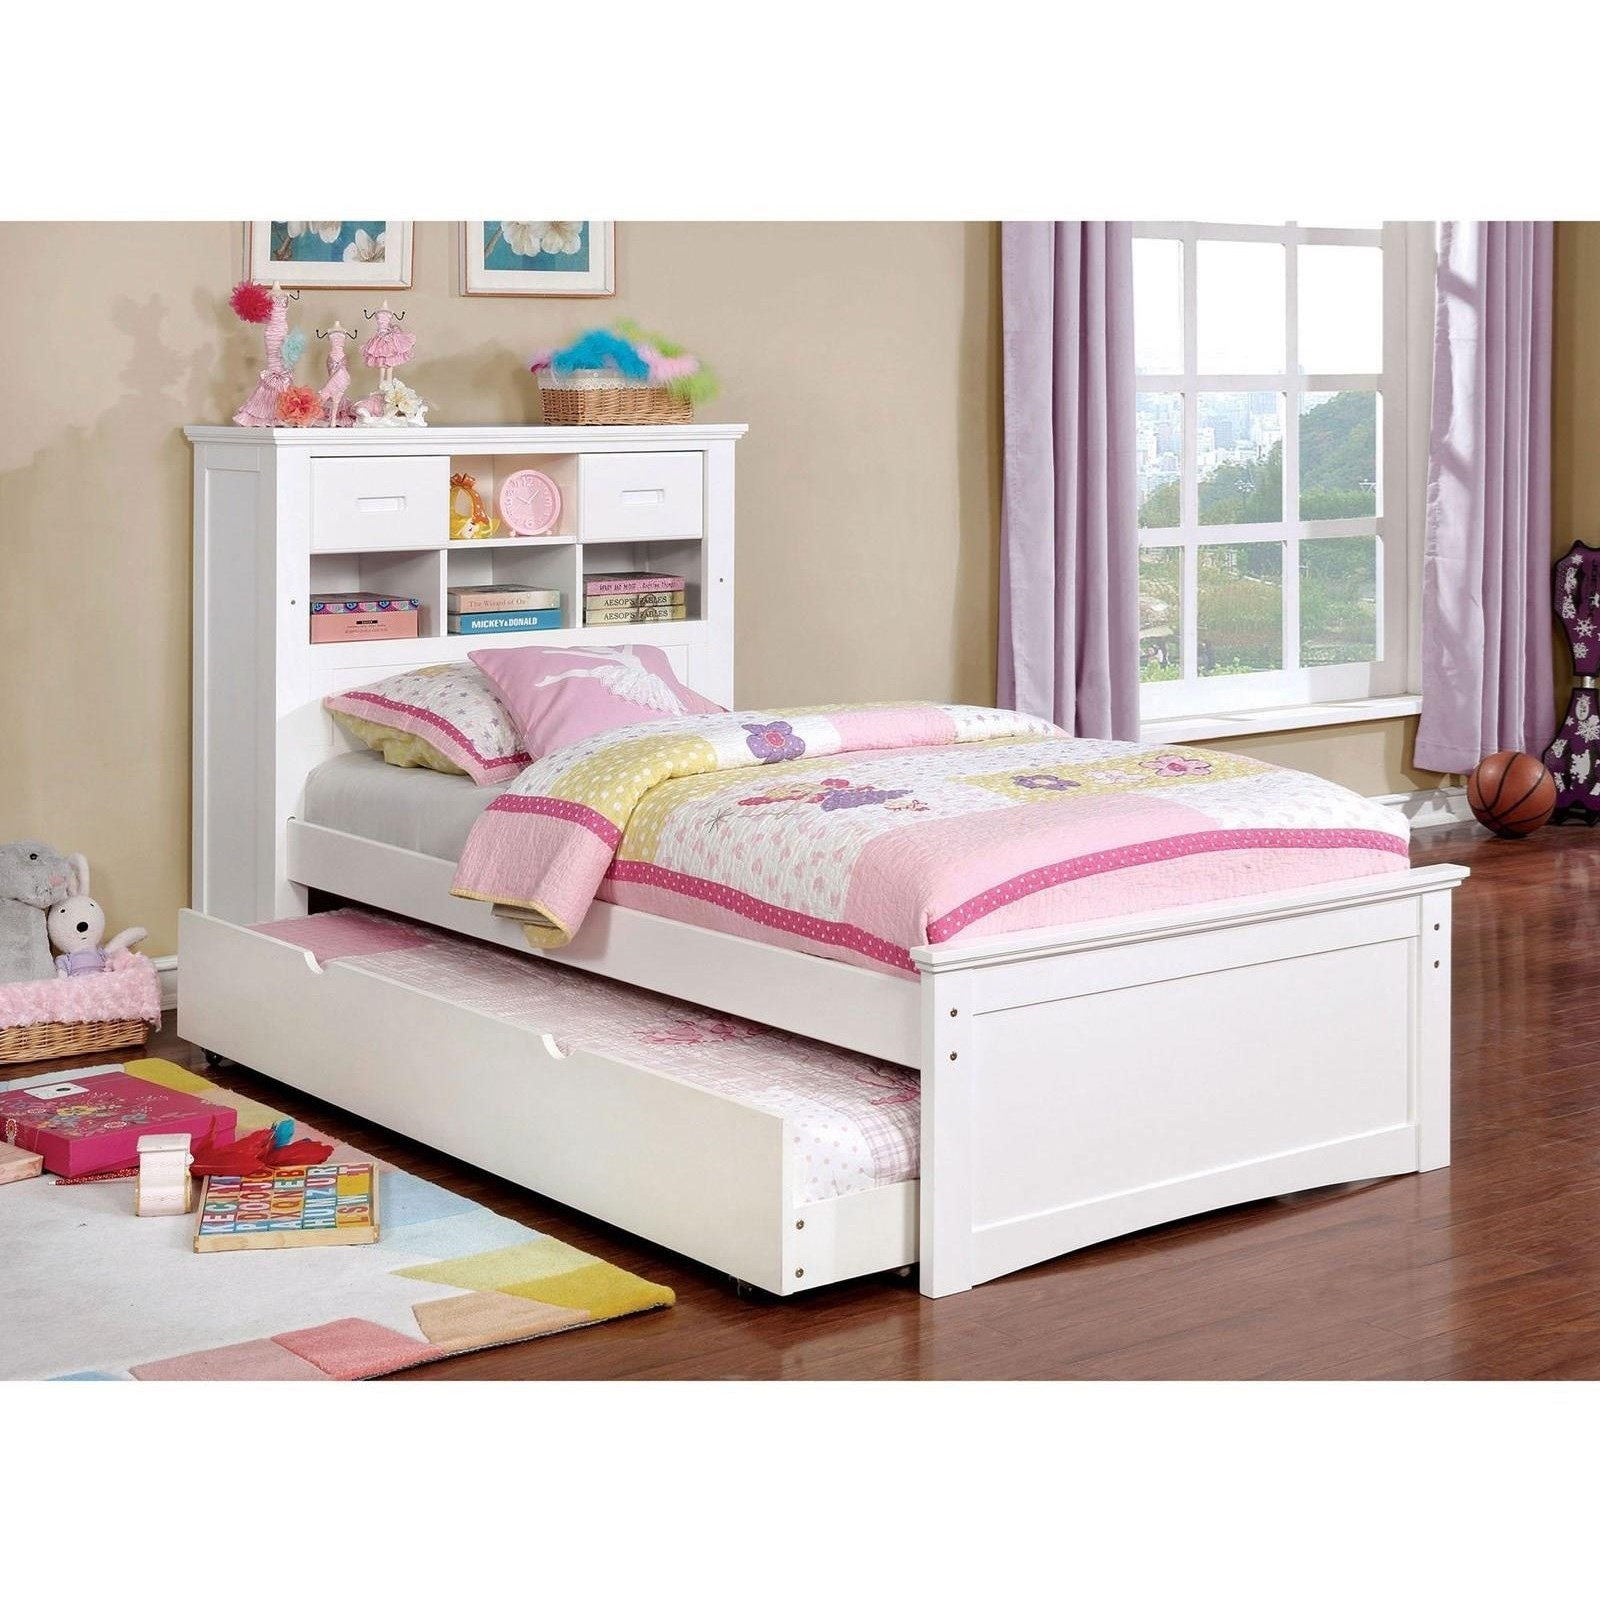 Bookcase Bed Pearland Twin Bookcase Bed With Trundle And Reading Light By Furniture Of America At Rooms For Less